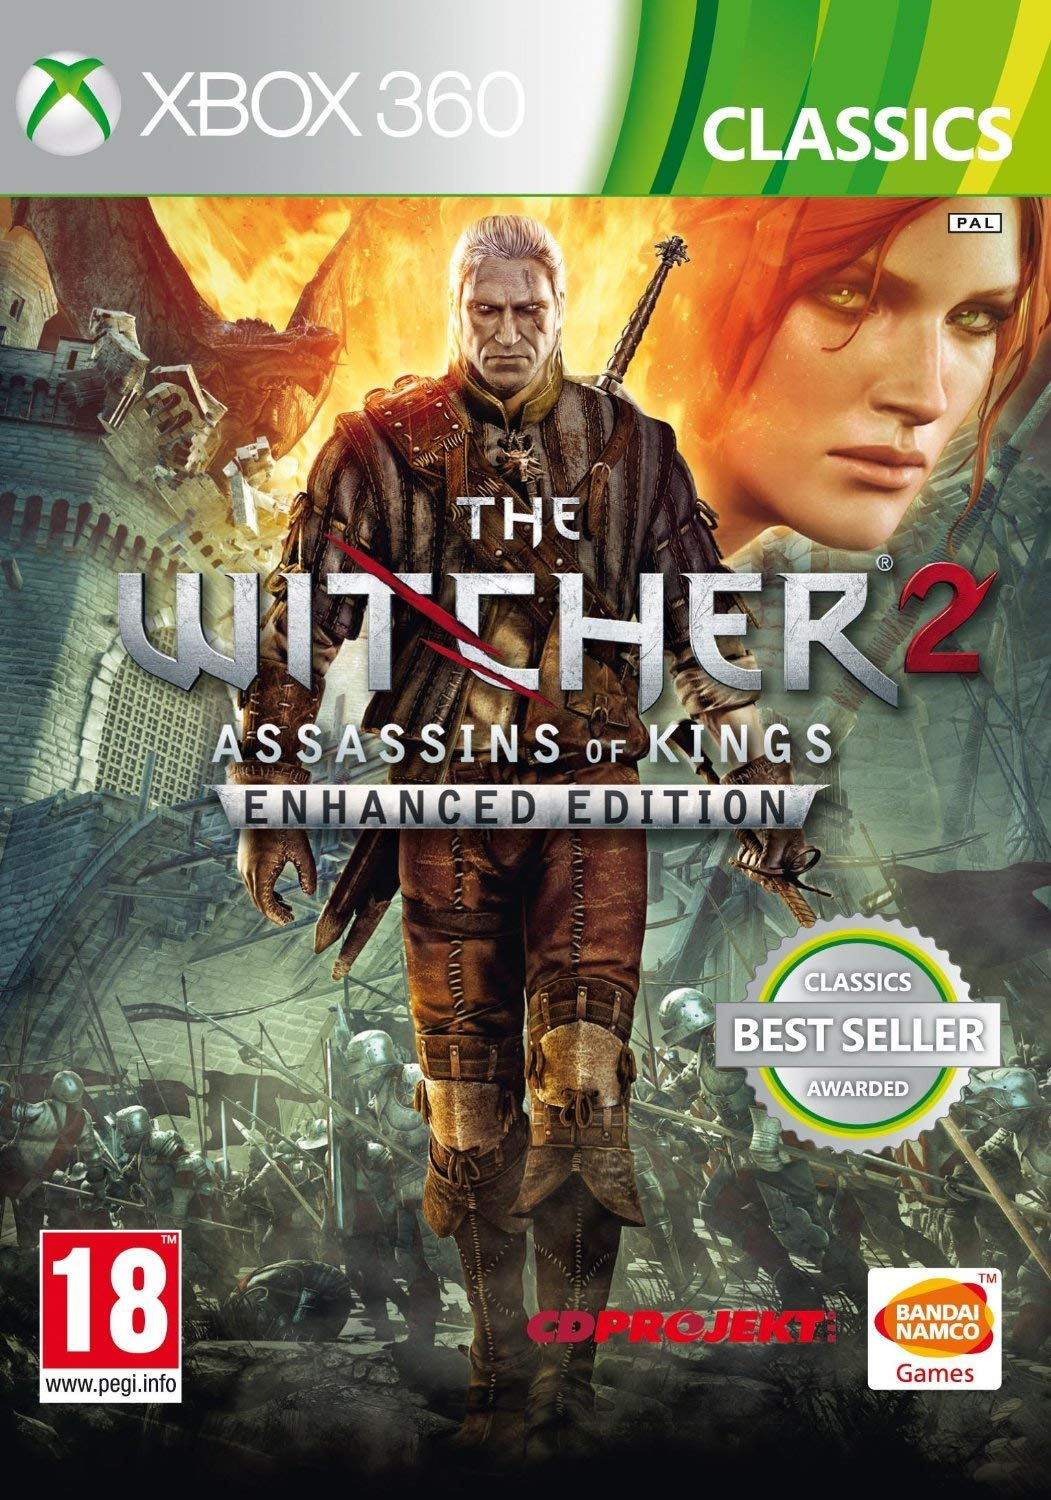 Max 48% OFF The Witcher 2 Recommended Assassins of Kings Edition: Xbo Classics Enhanced